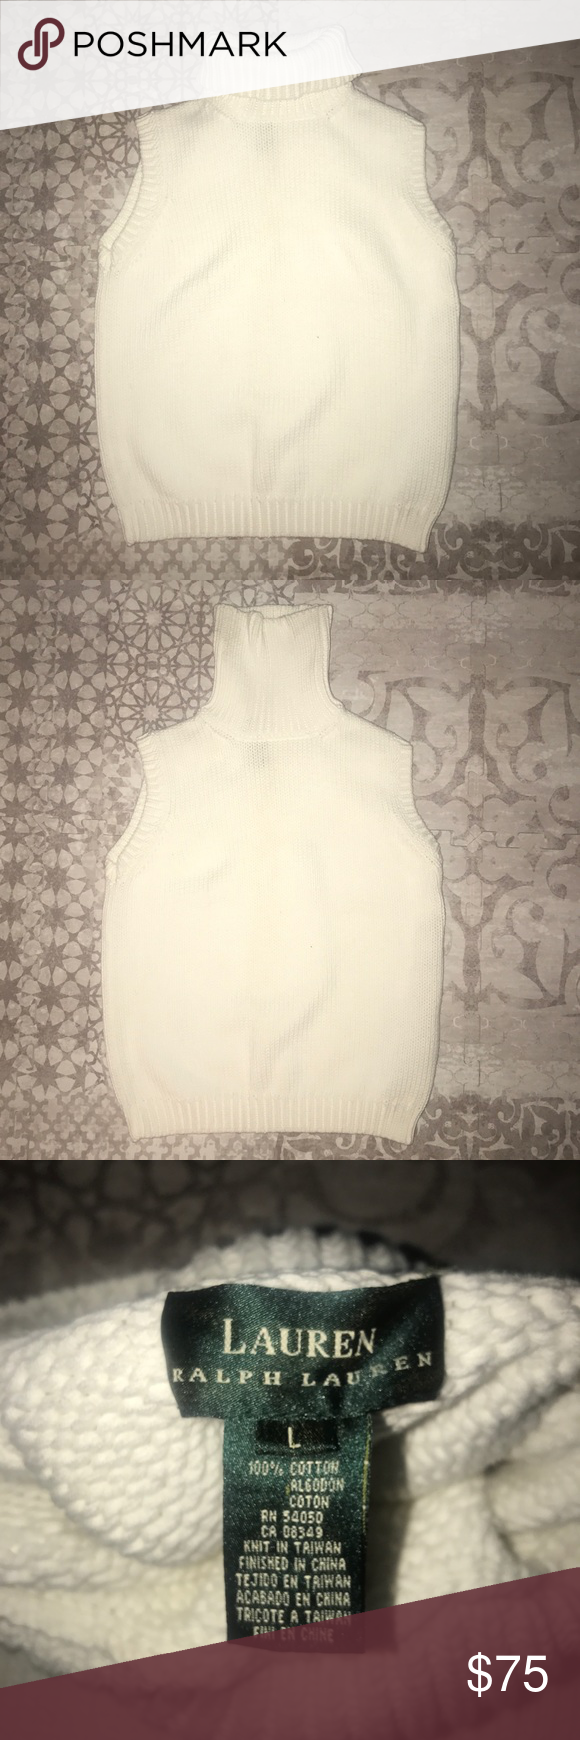 Ralph Lauren White Sleeveless Turtleneck Ralph has done it again! This Turtleneck is timeless and can be worn all year around. Brand New  - never been worn. Hand knit and made of 100% cotton! You won't find this at a b tree price! Lauren Ralph Lauren Sweaters Cowl & Turtlenecks